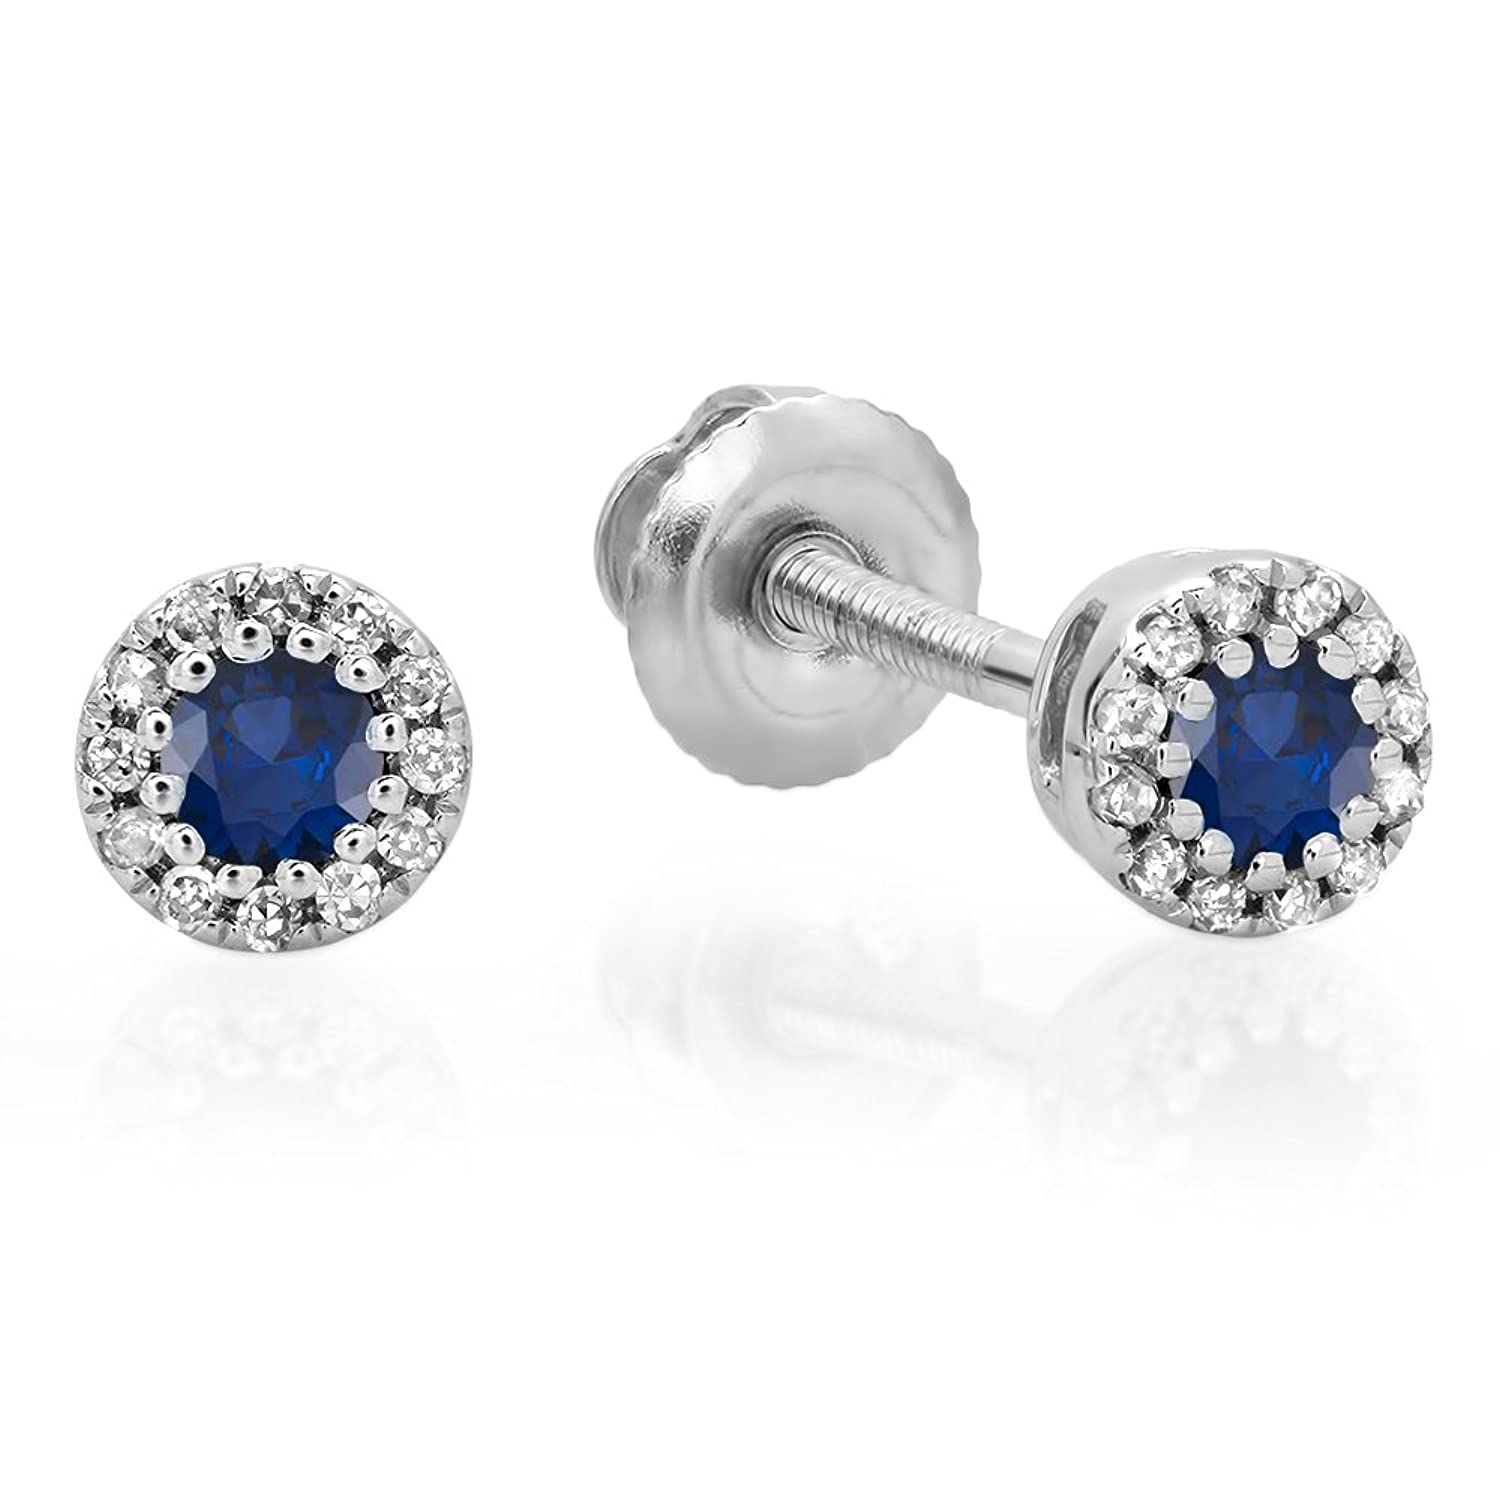 10K Gold Round Ladies Cluster Halo Style Stud Earrings